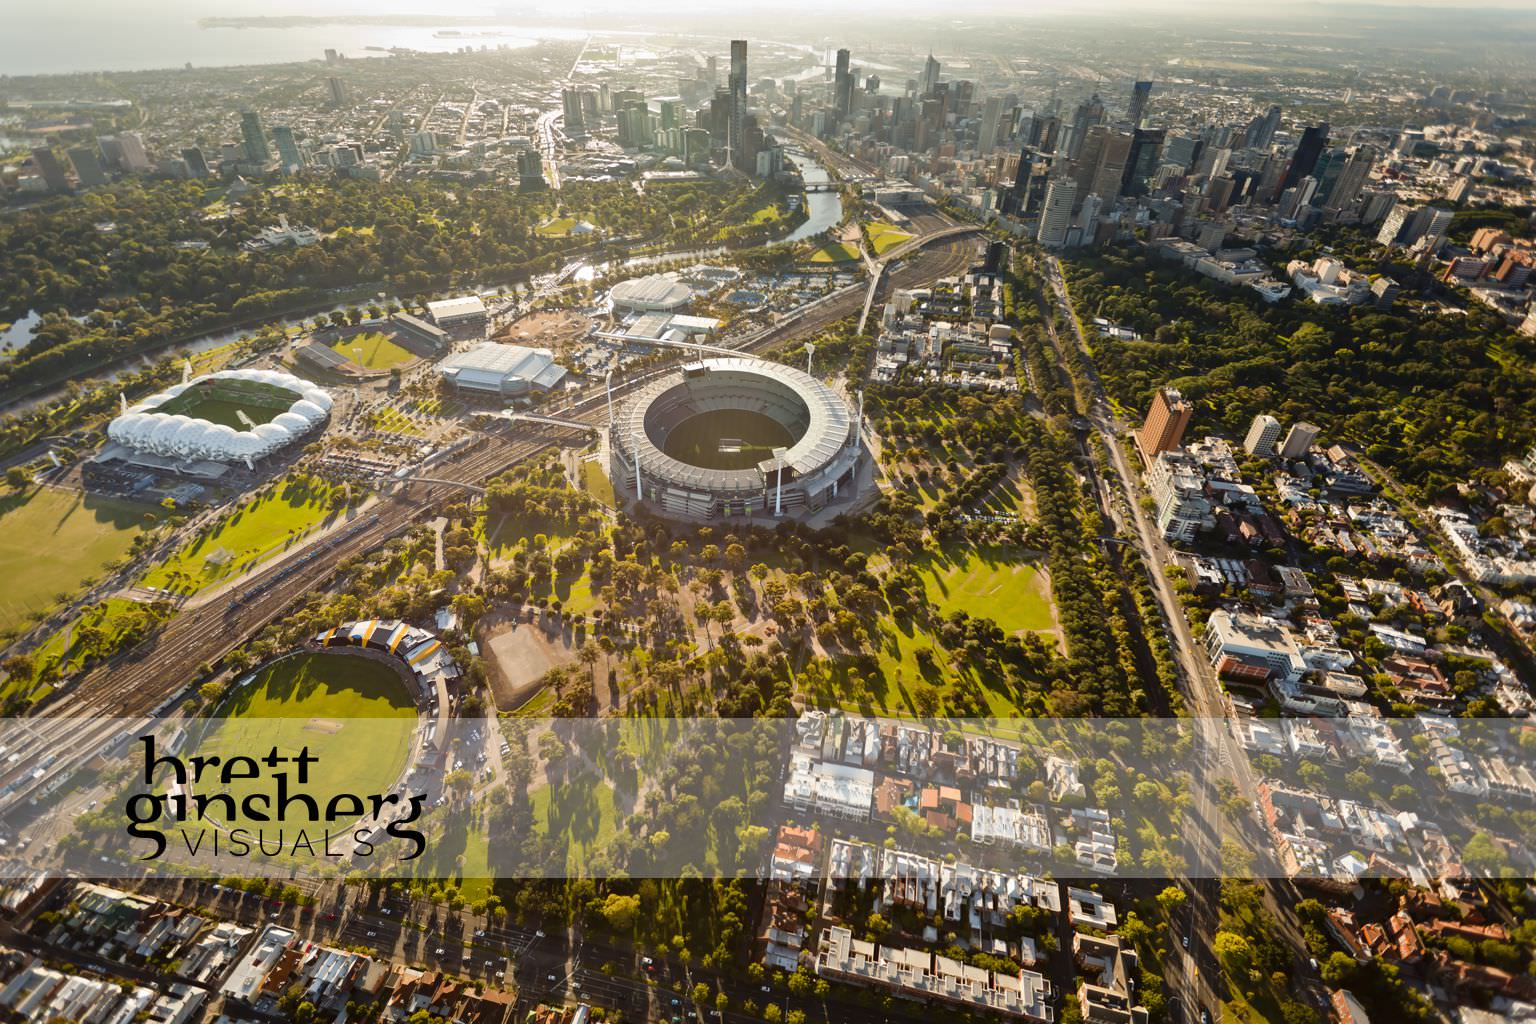 aerial drone photograph of melbourne cricket ground aimee park stadium rod laver areana